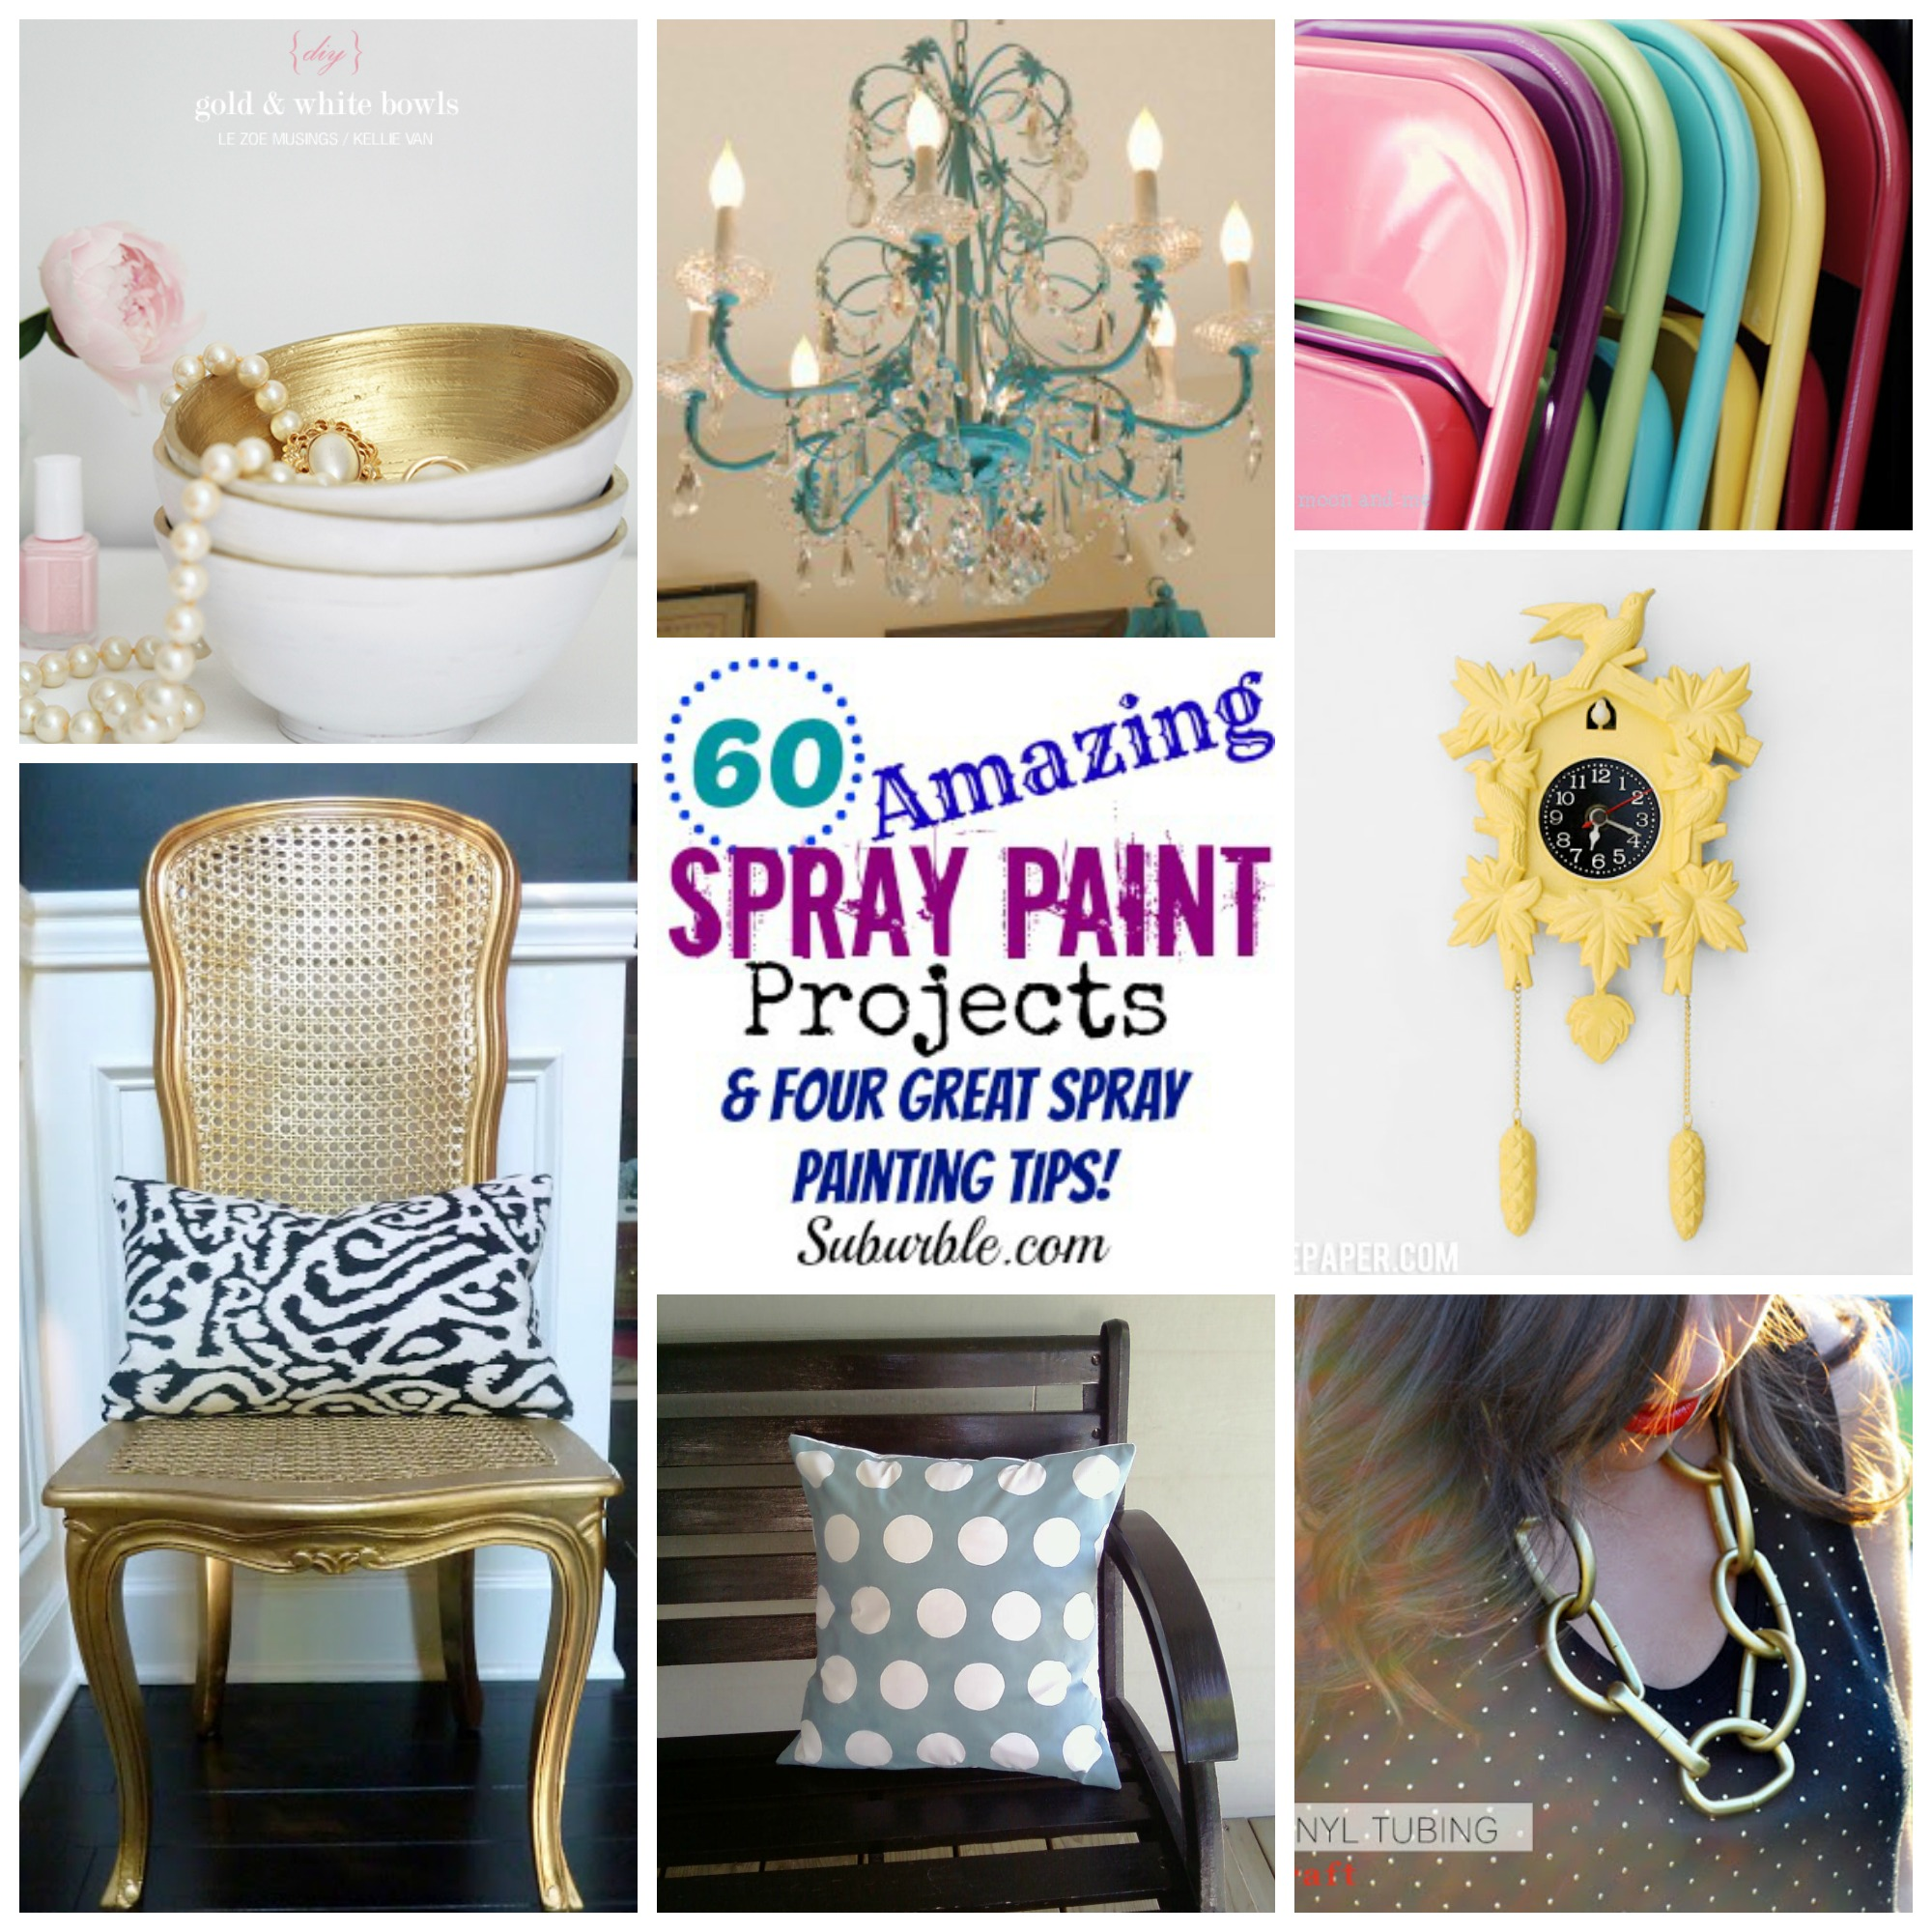 60 amazing spray paint projects four great spray for Diy paint